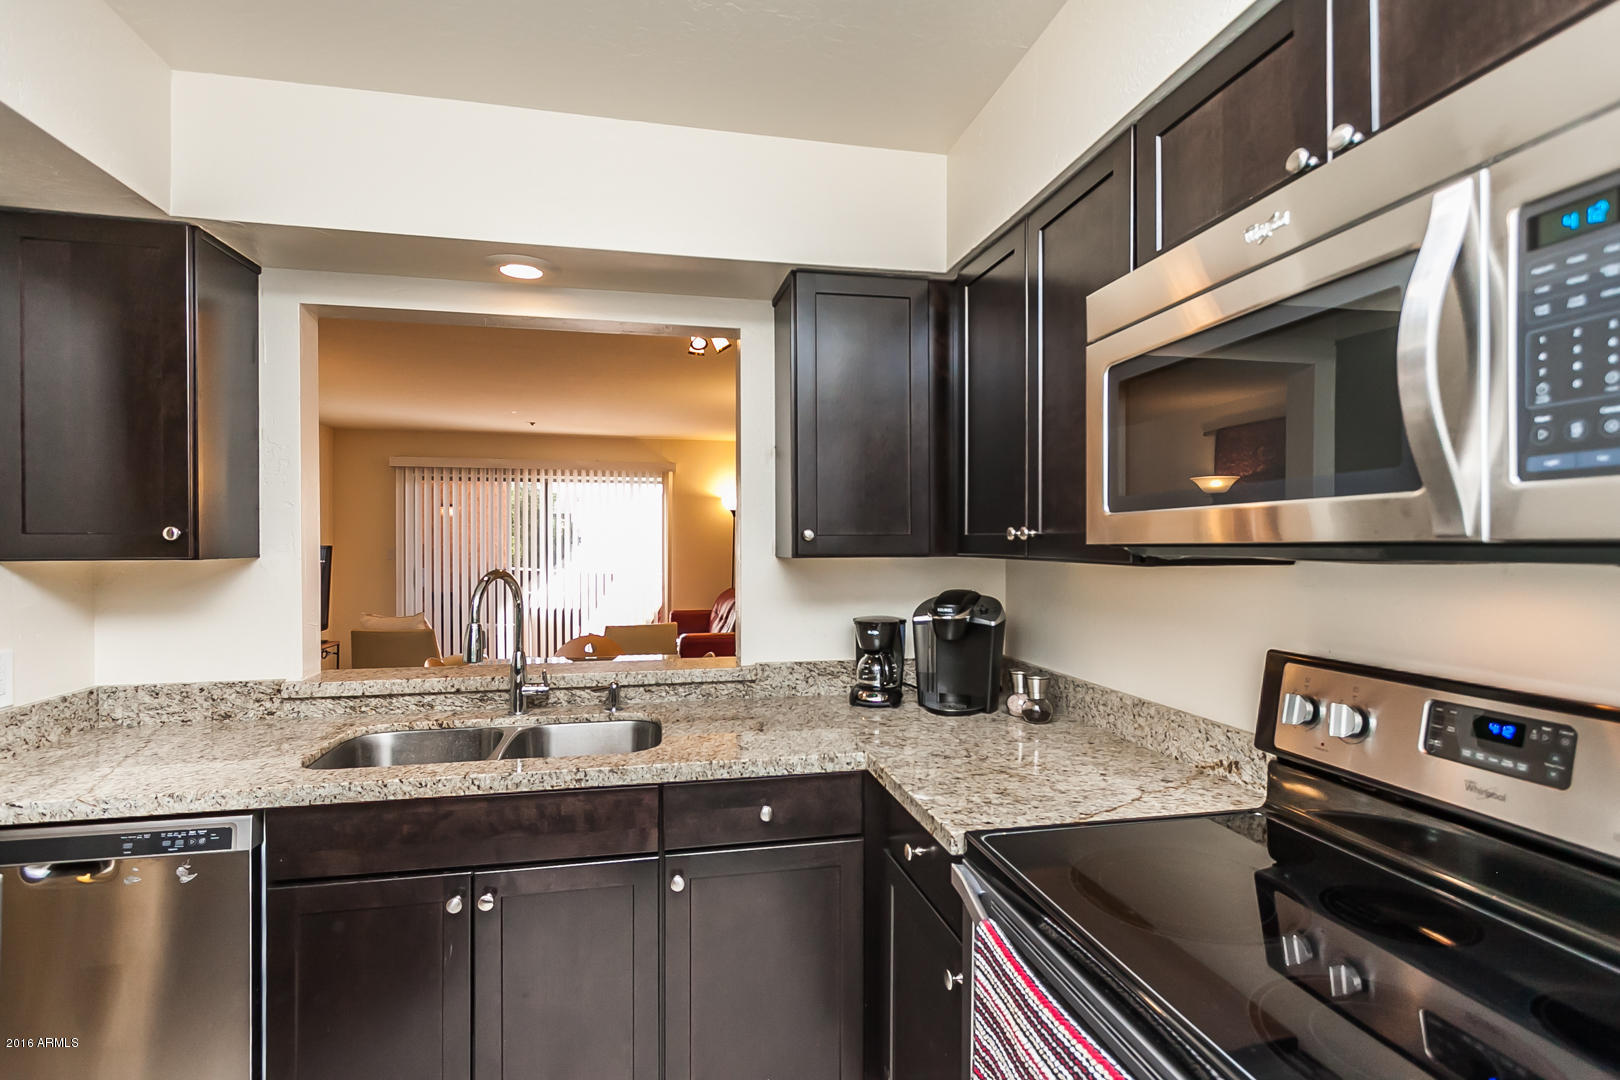 7494 E EARLL Drive # 315, Scottsdale, AZ 85251, 2 Bedrooms Bedrooms, ,Residential Lease,For Rent,7494 E EARLL Drive # 315,6135802